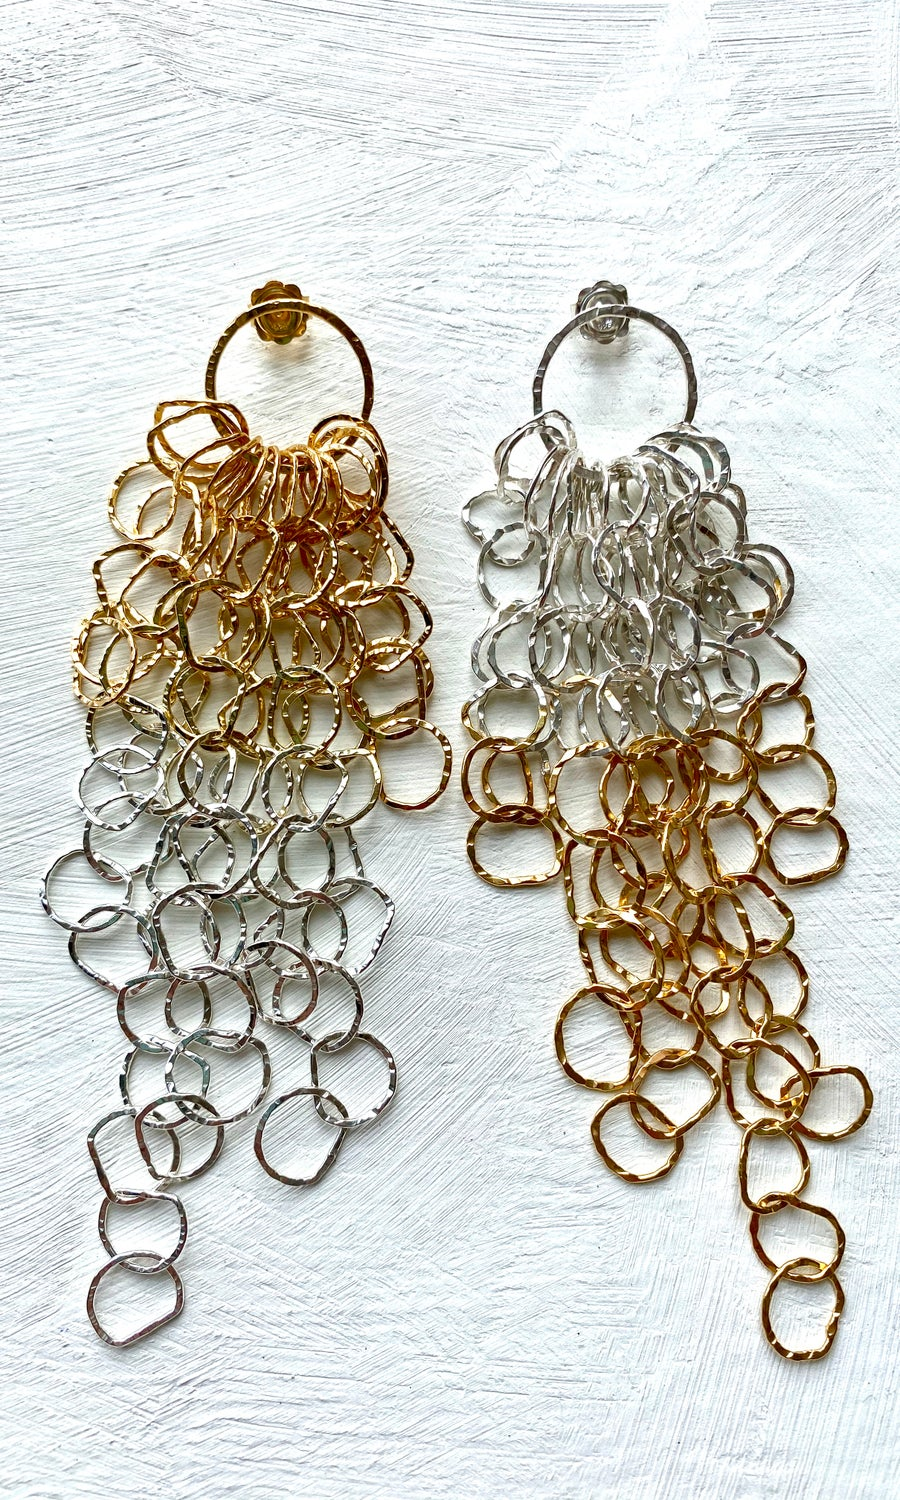 Image of Afiok large cascade earrings -sterling silver/gold vermeil